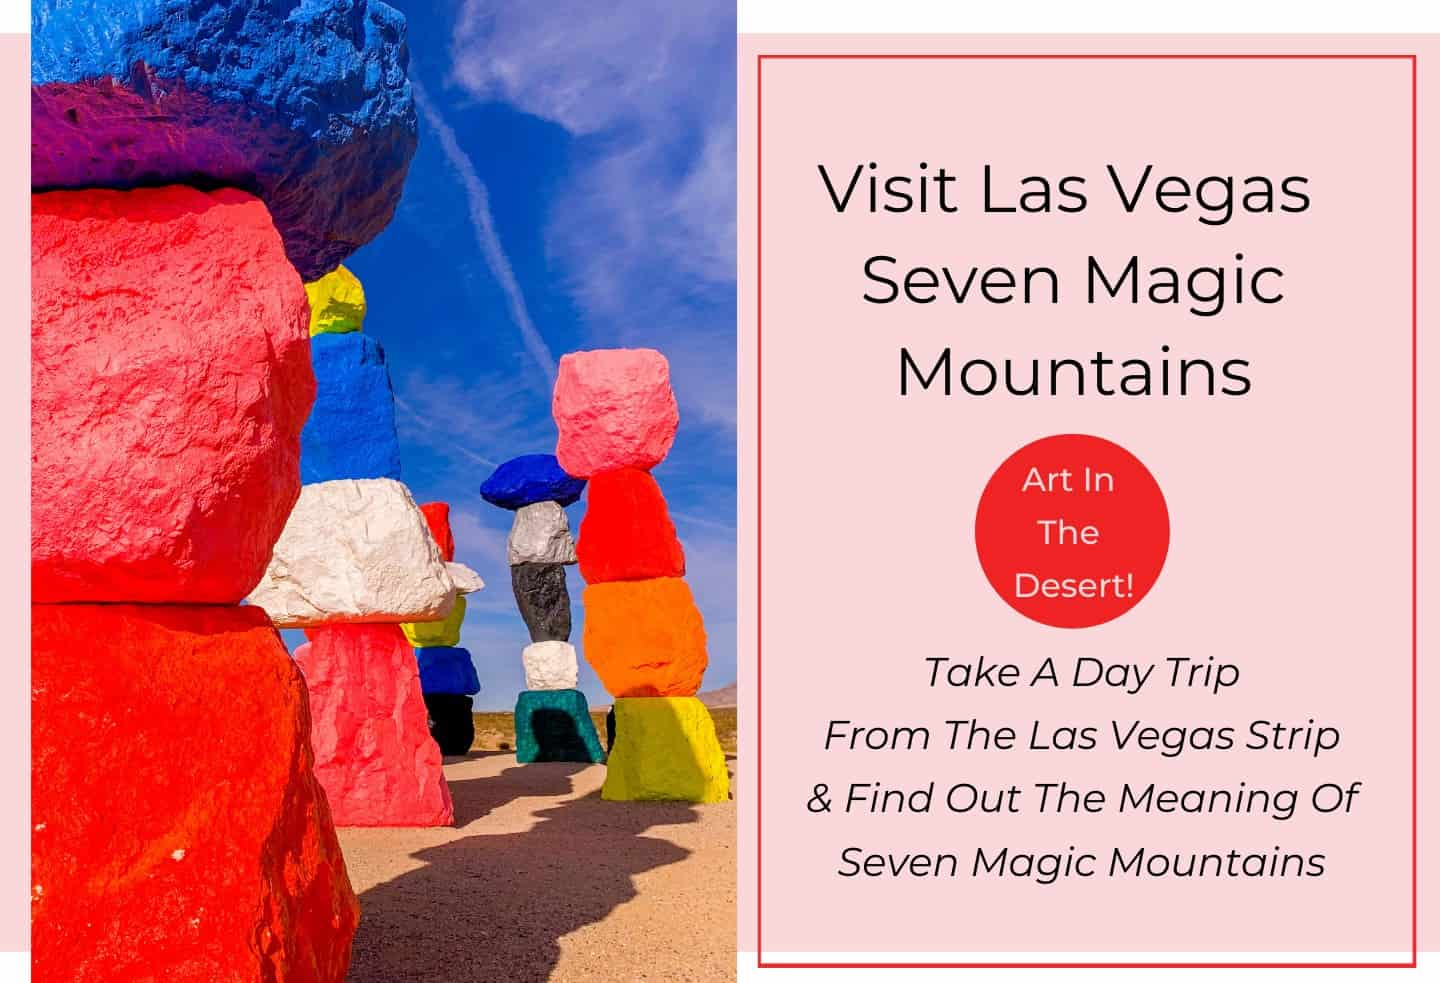 Seven Magic Mountains Meaning